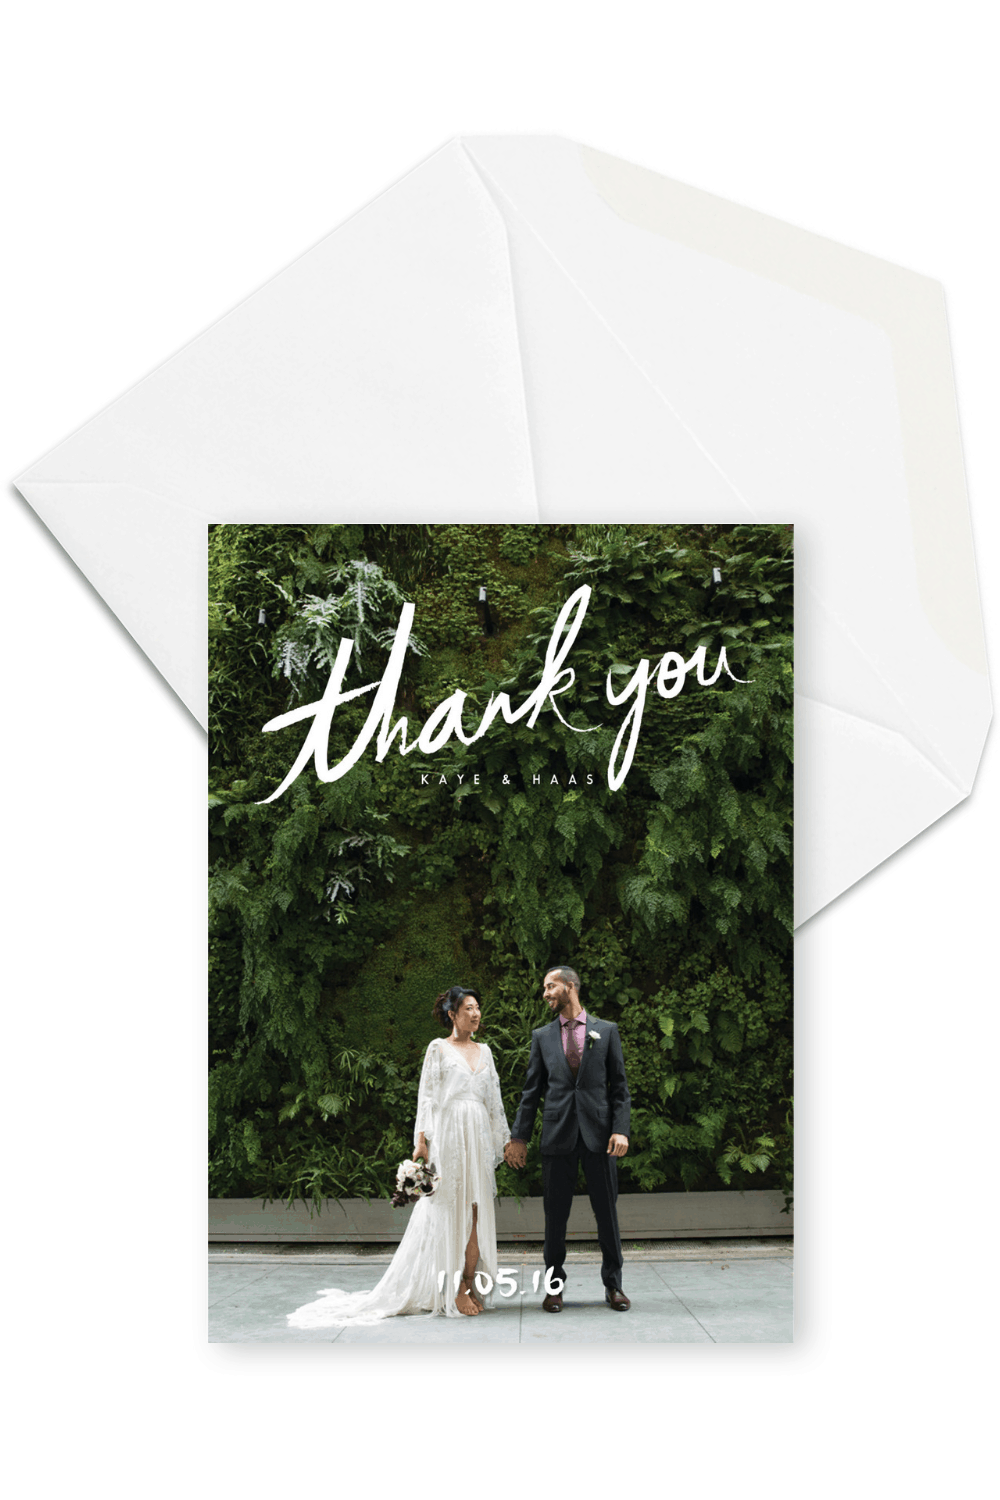 Rustic Wedding Thank You Card with Photo For the Love of Stationery Sarah Peet Photography